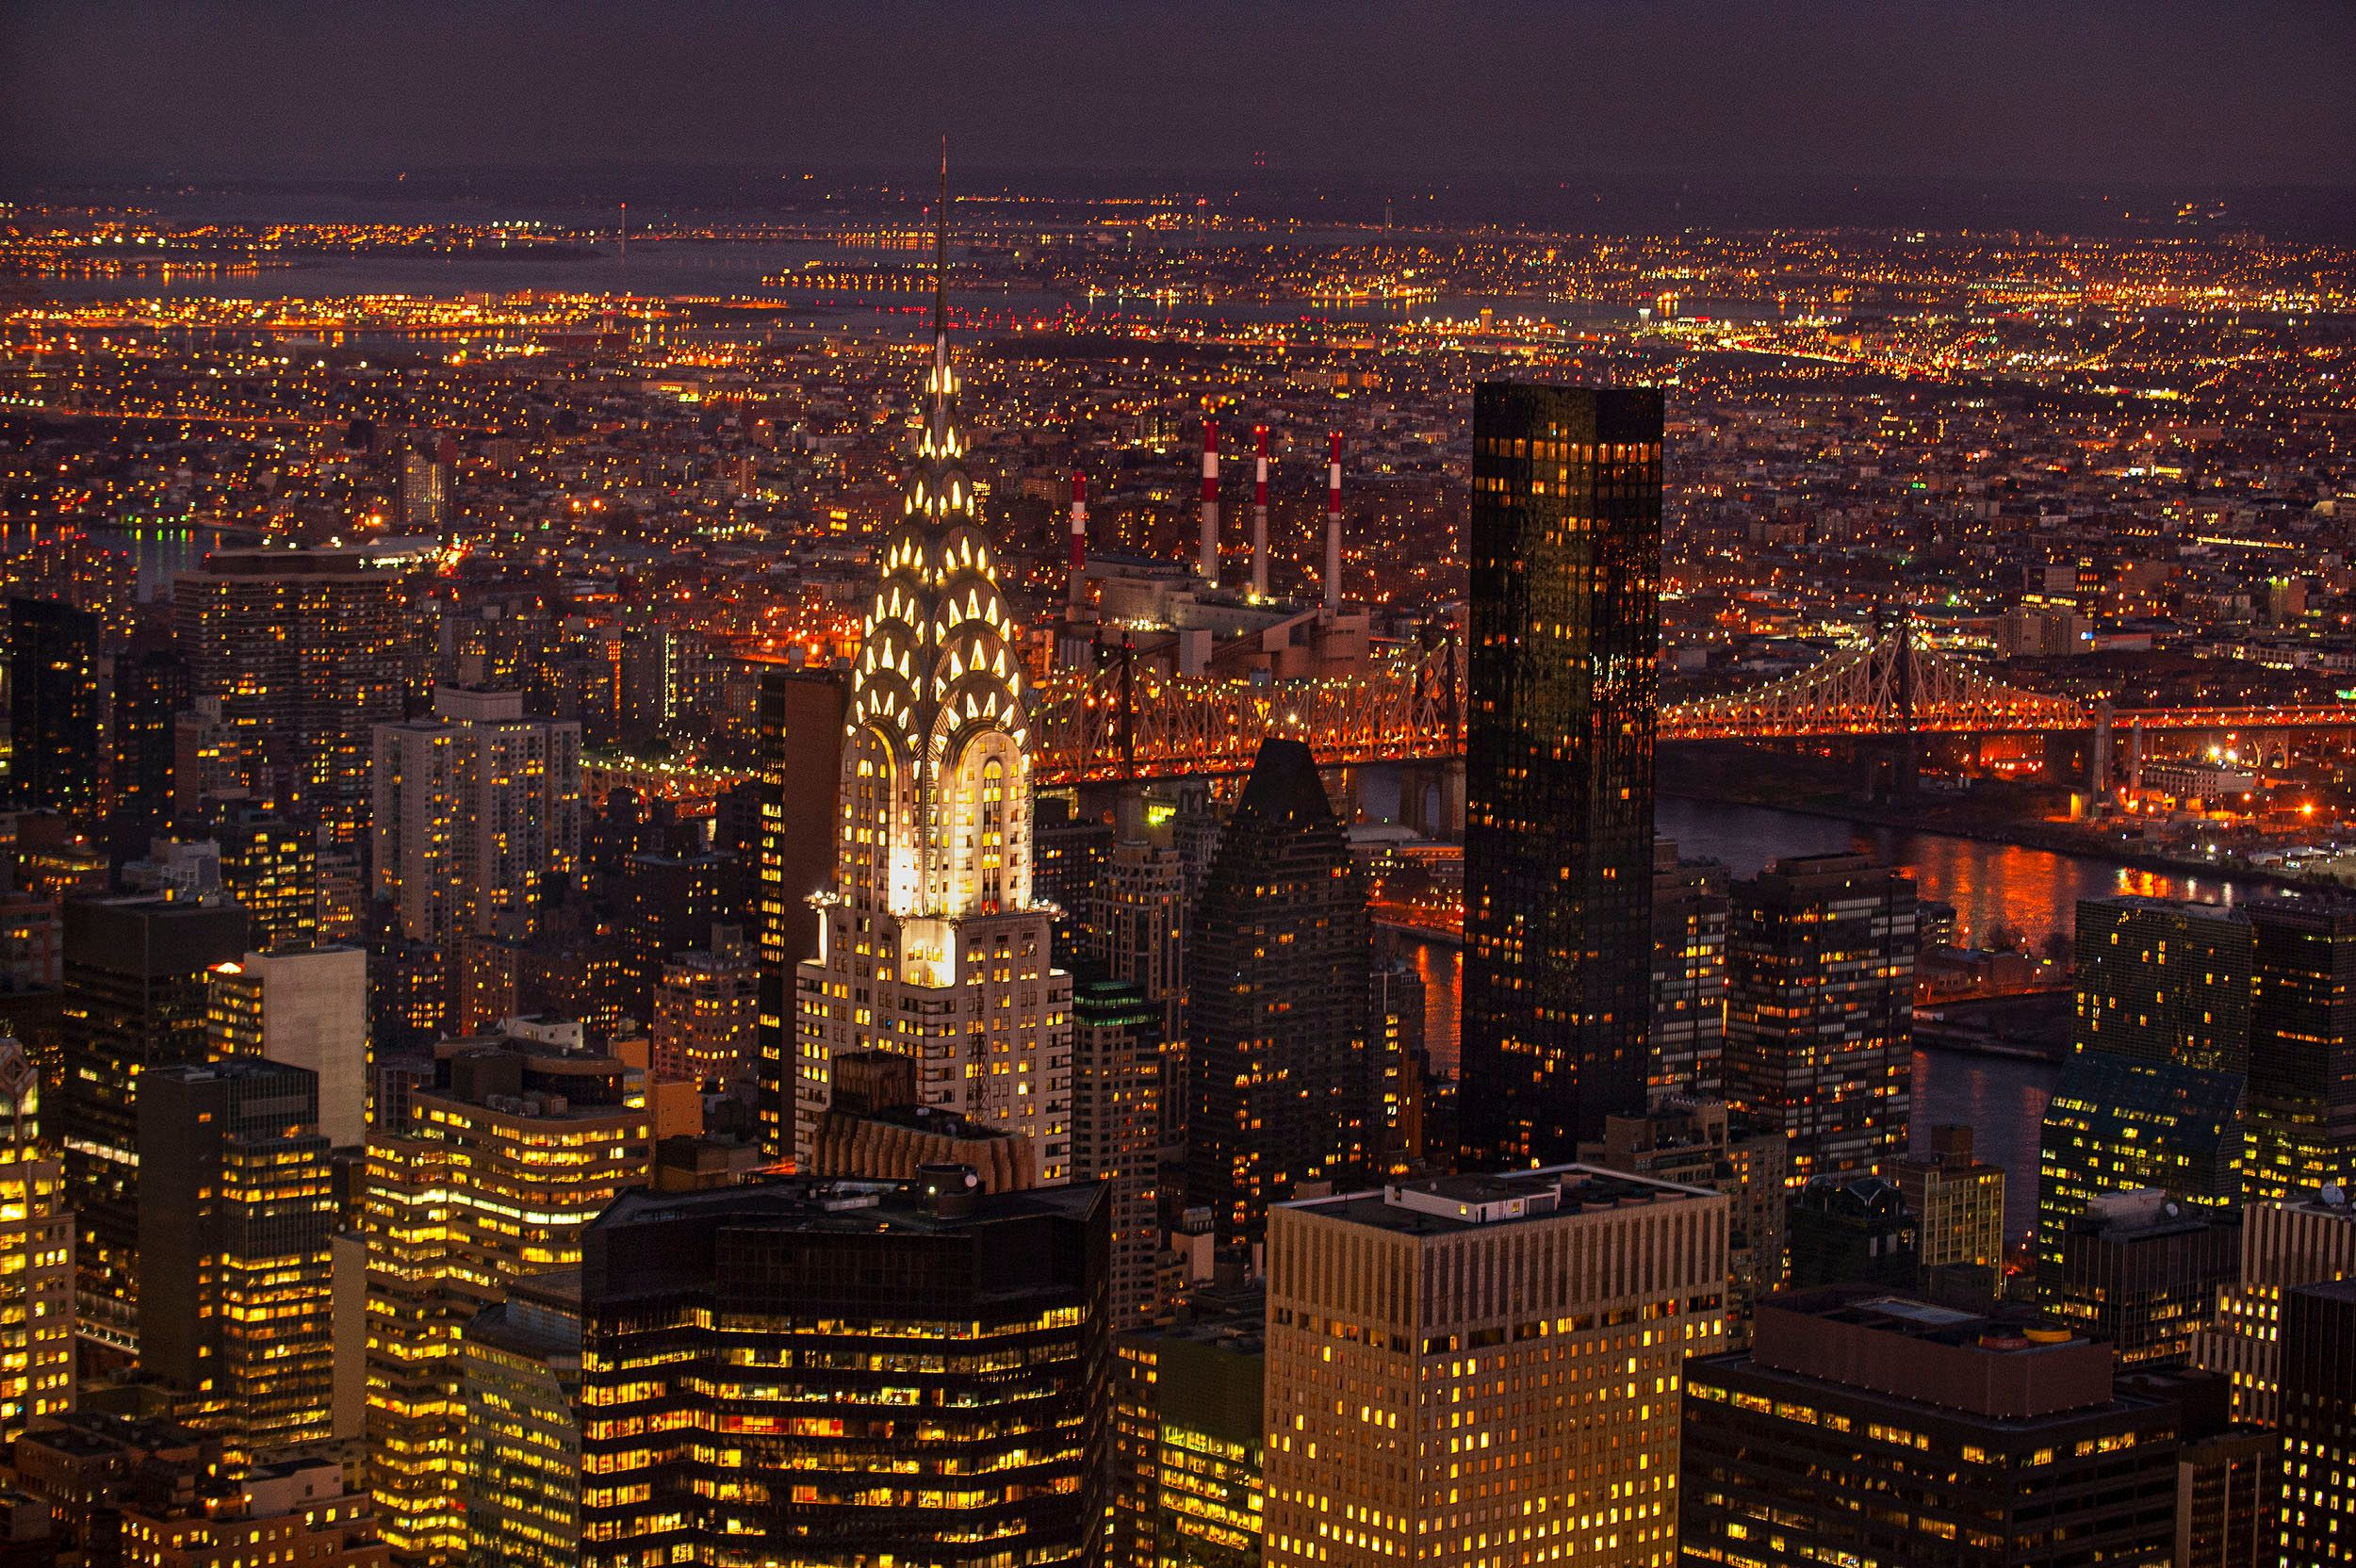 New York City After Dark